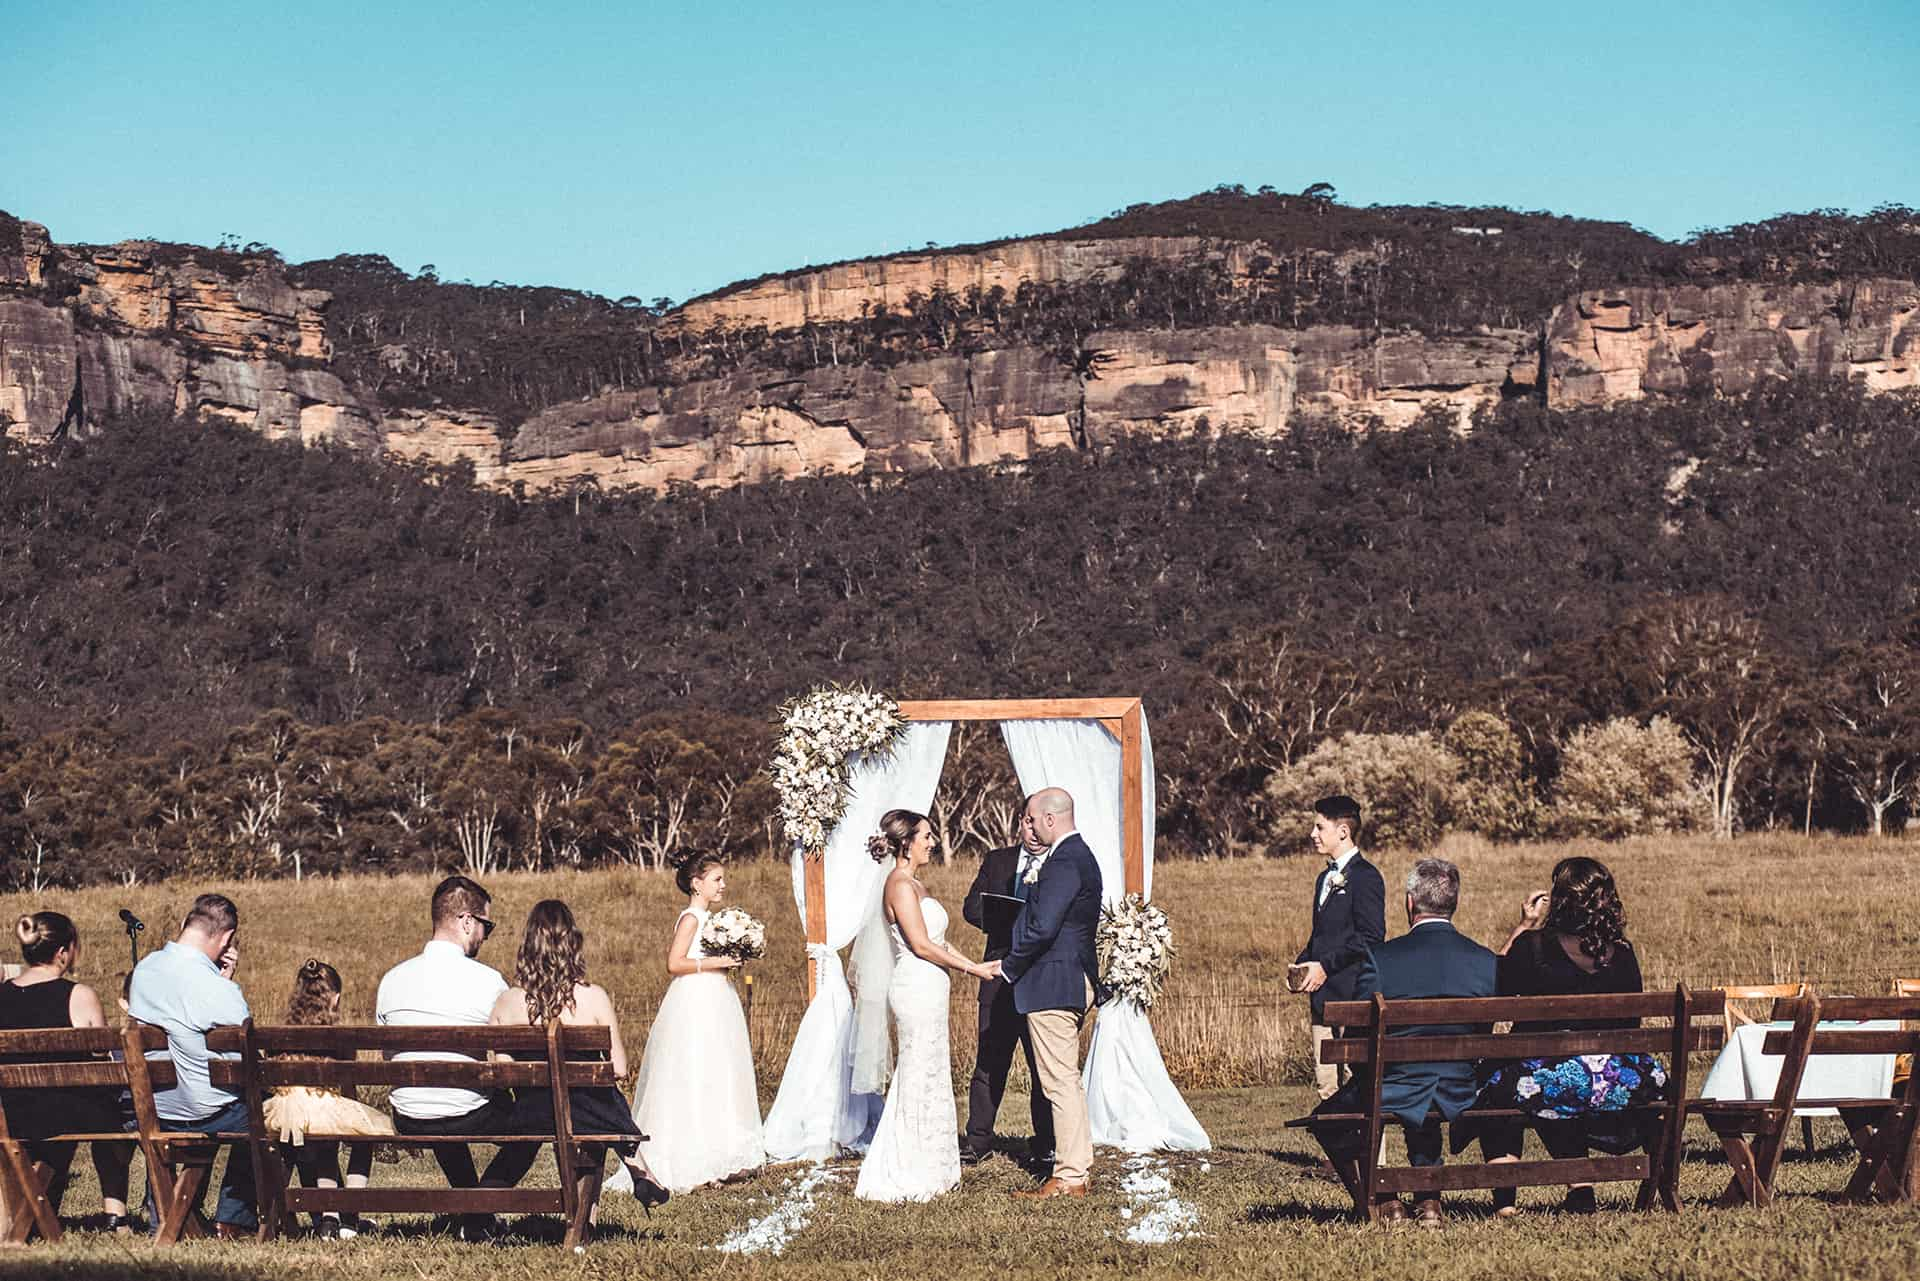 Best Sydney wedding photographer videographer The Camera Crew Wedding photography packages wedding videography 34